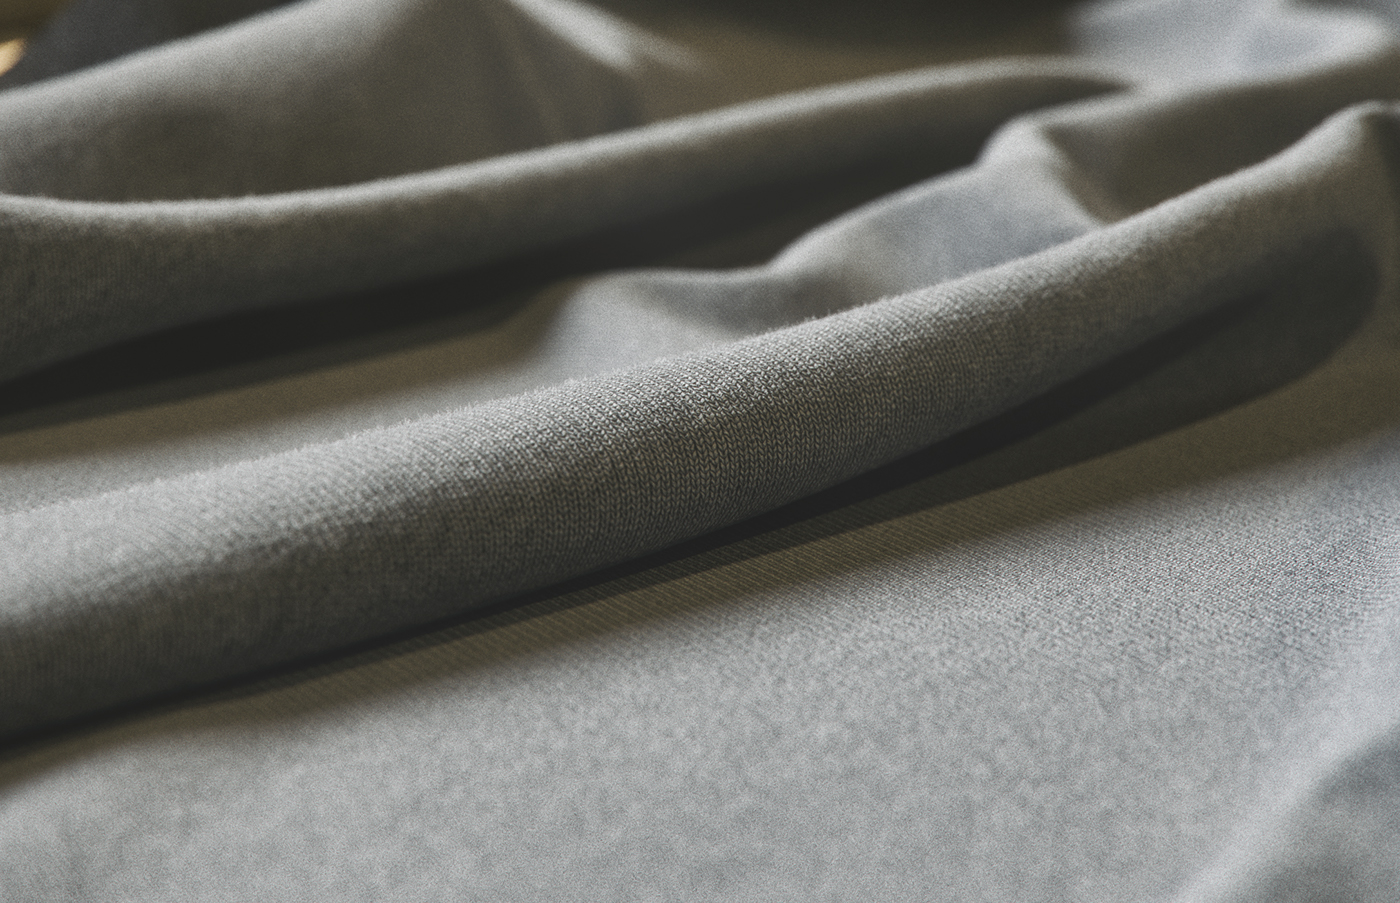 Creating Realistic Fabric material with Microfibers | CG